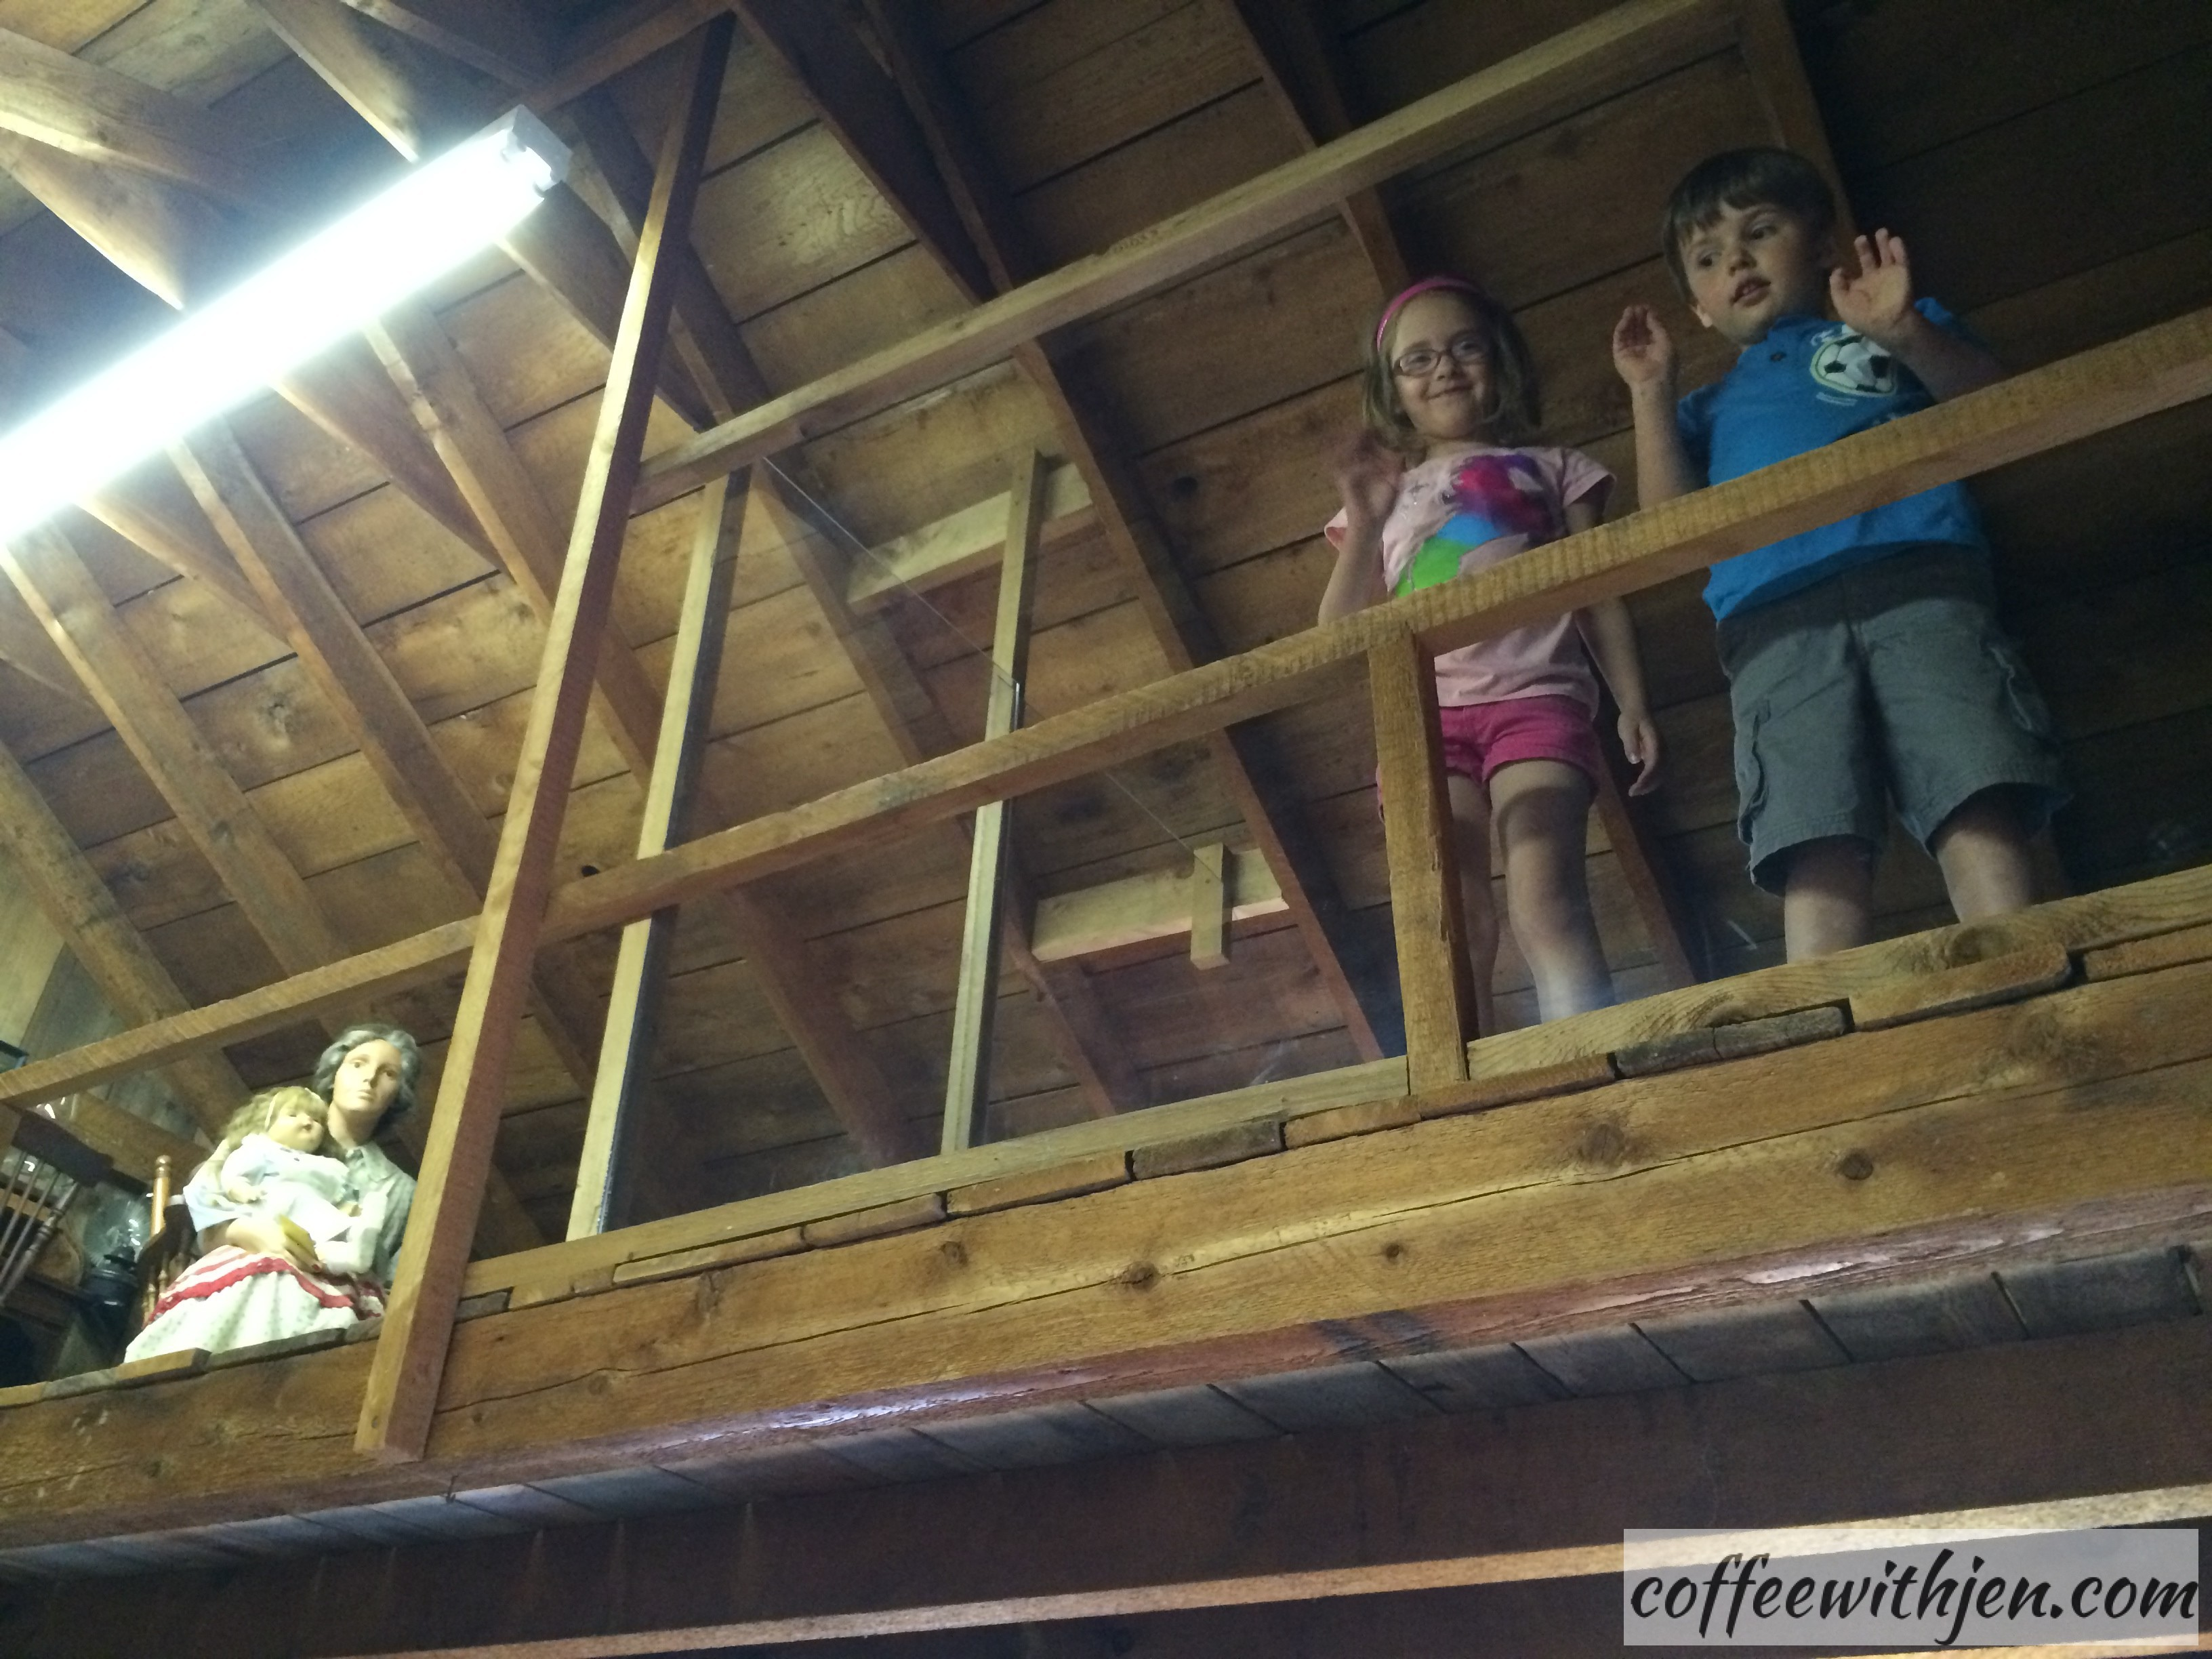 The Kids' Zone- They even got to climb up into the loft like Mary and Laura!